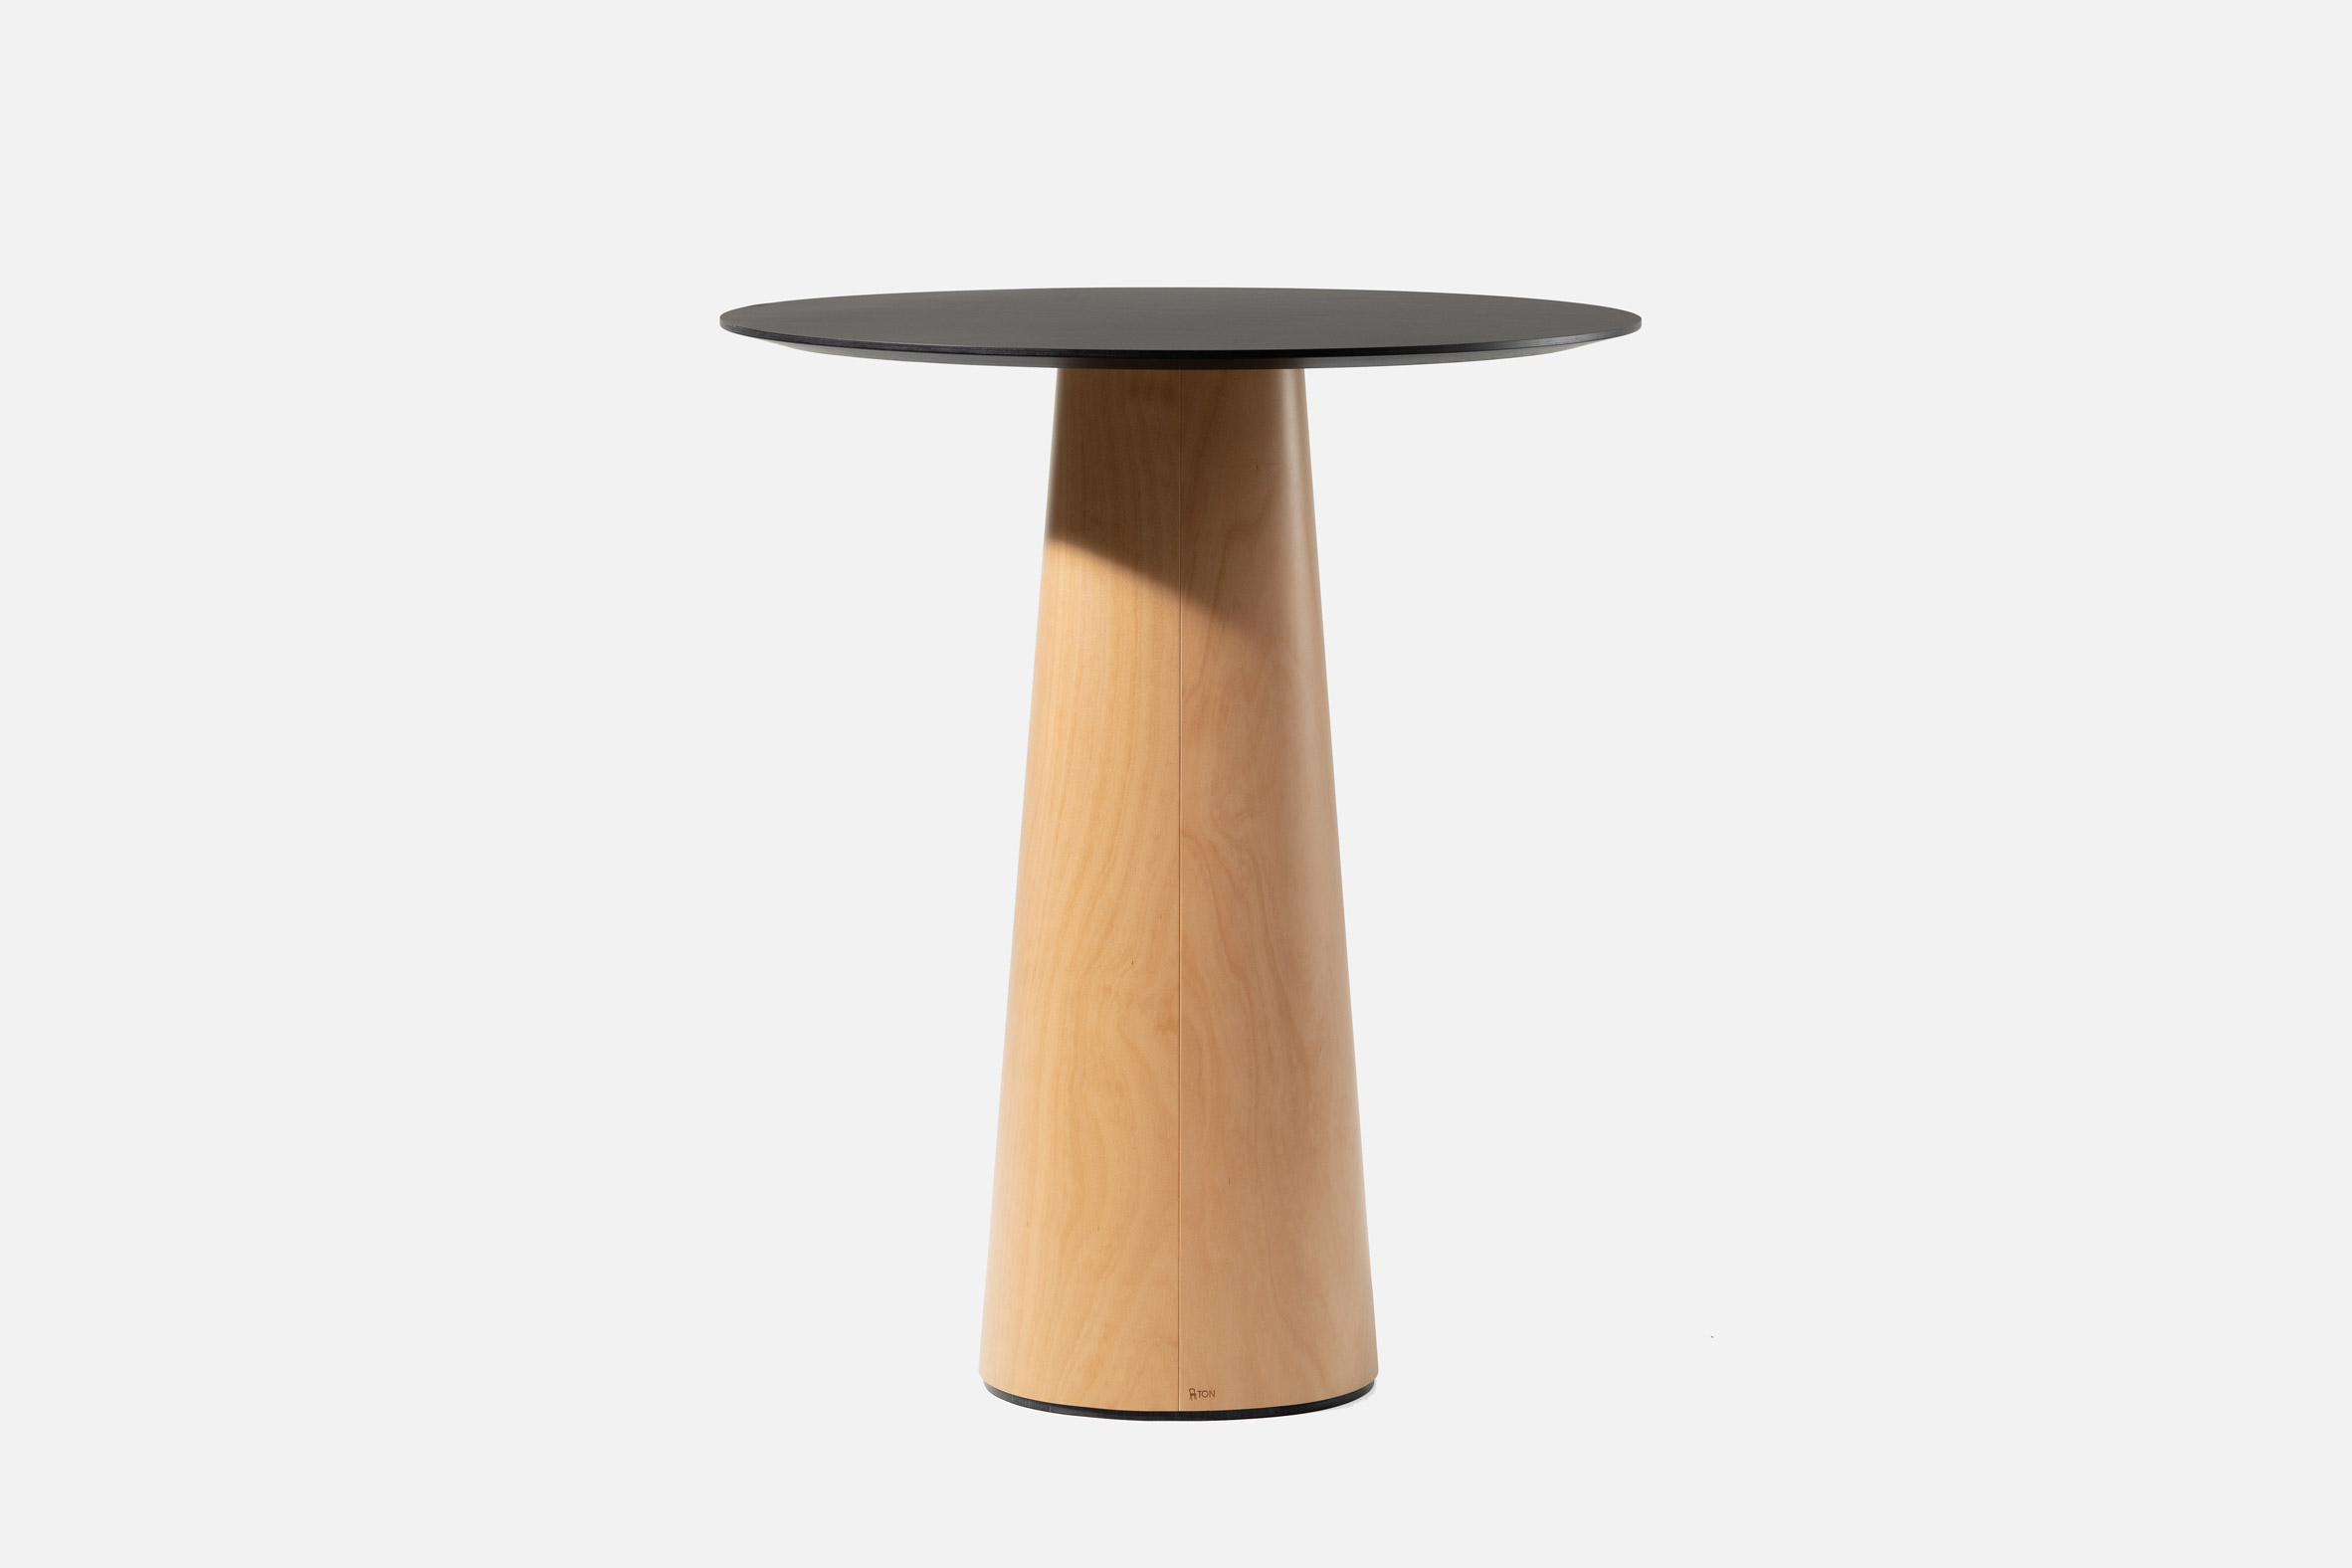 Small plywood table with a black top